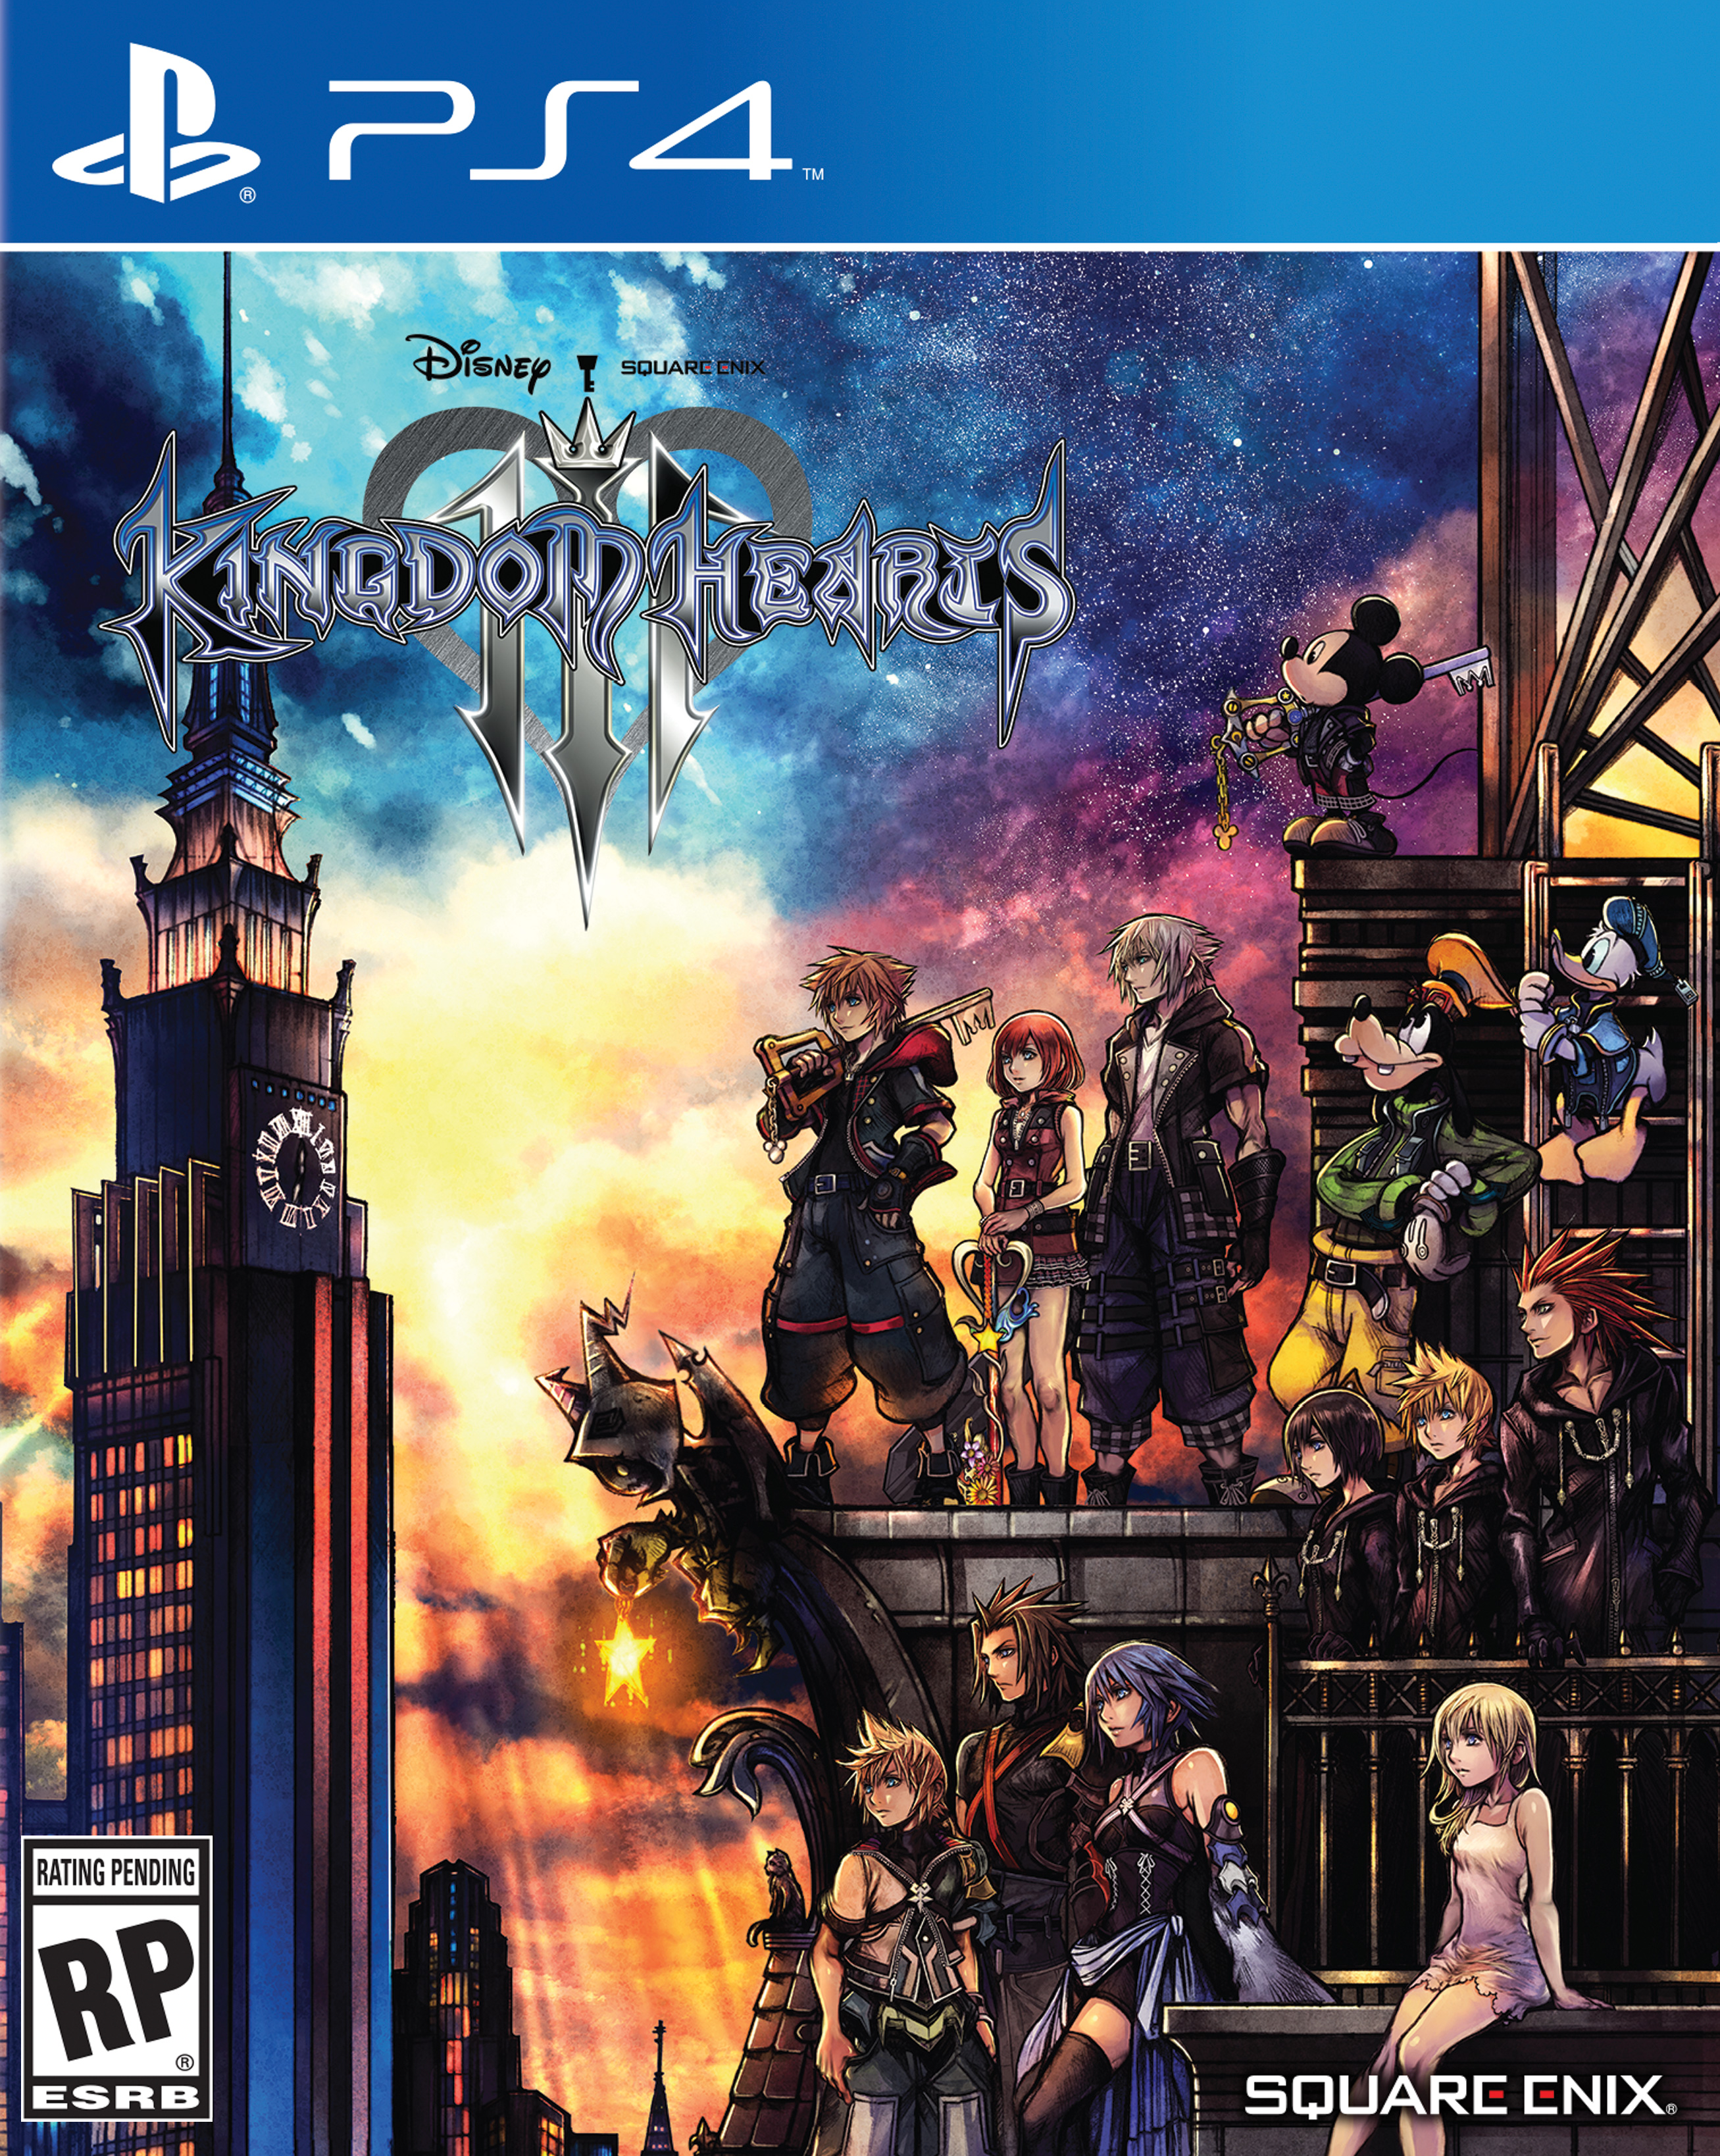 Kingdom-Hearts-3-PS4-Boxart-September-2018.jpg